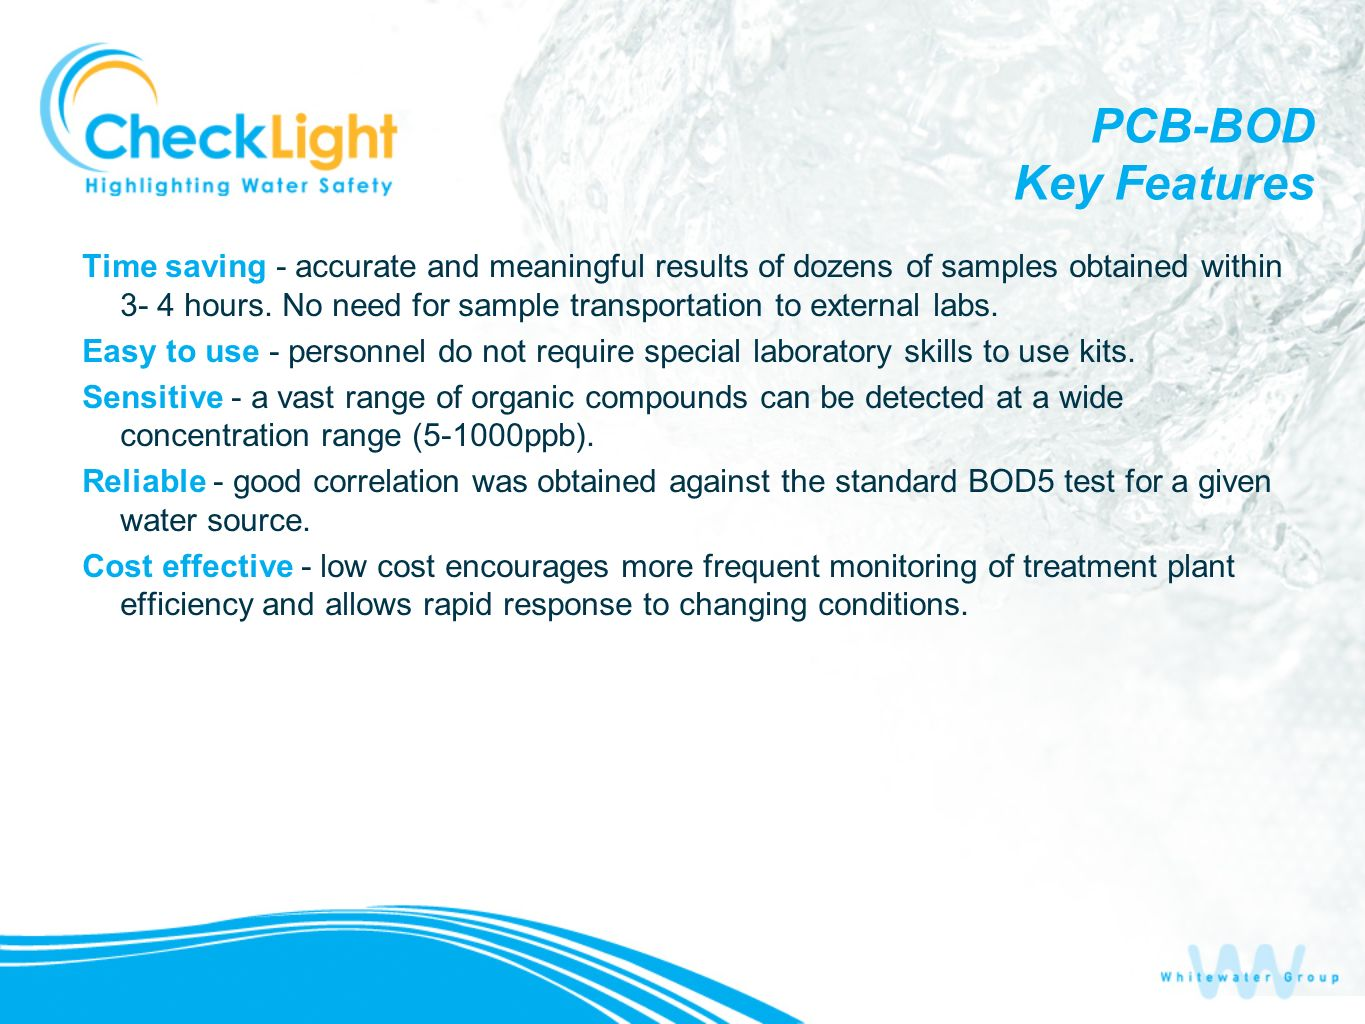 PCB-BOD Key Features